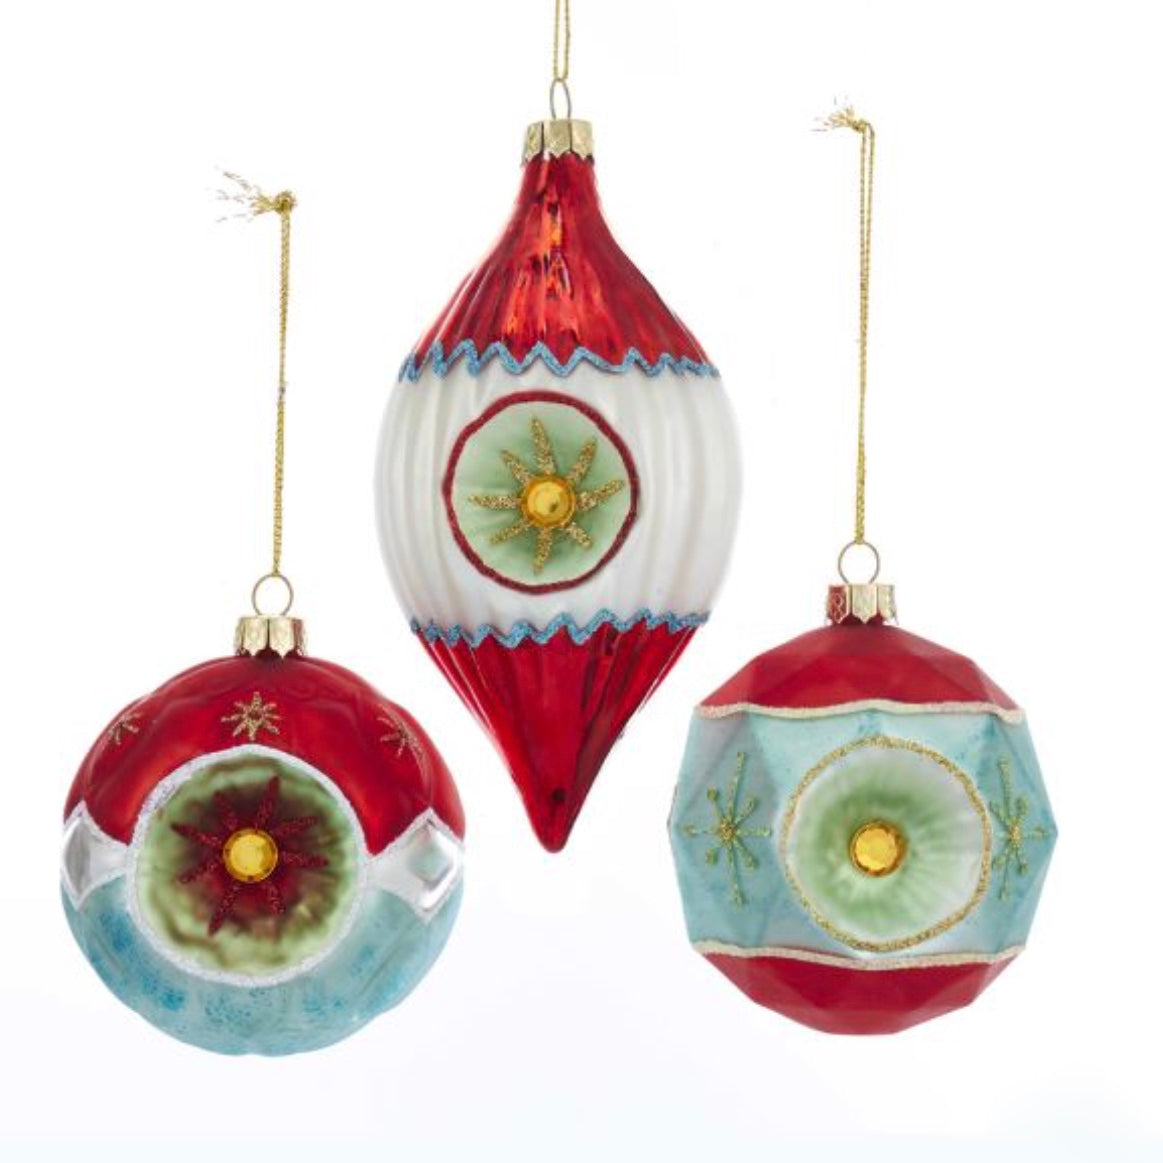 Kurt Adler Glass Ball and Finial With Reflector Ornaments